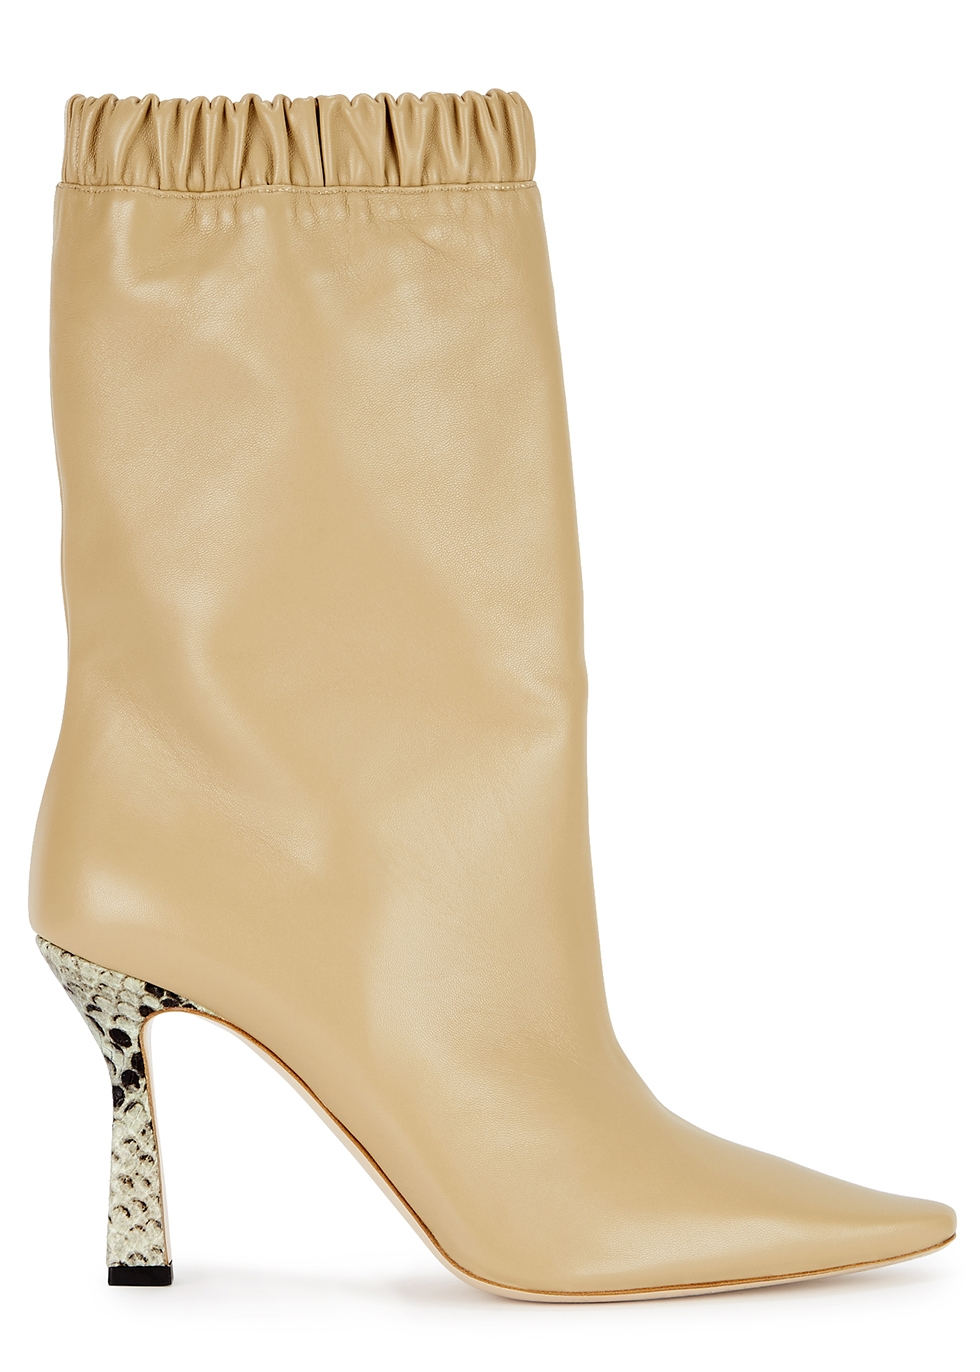 Lina 100 sand leather ankle boots